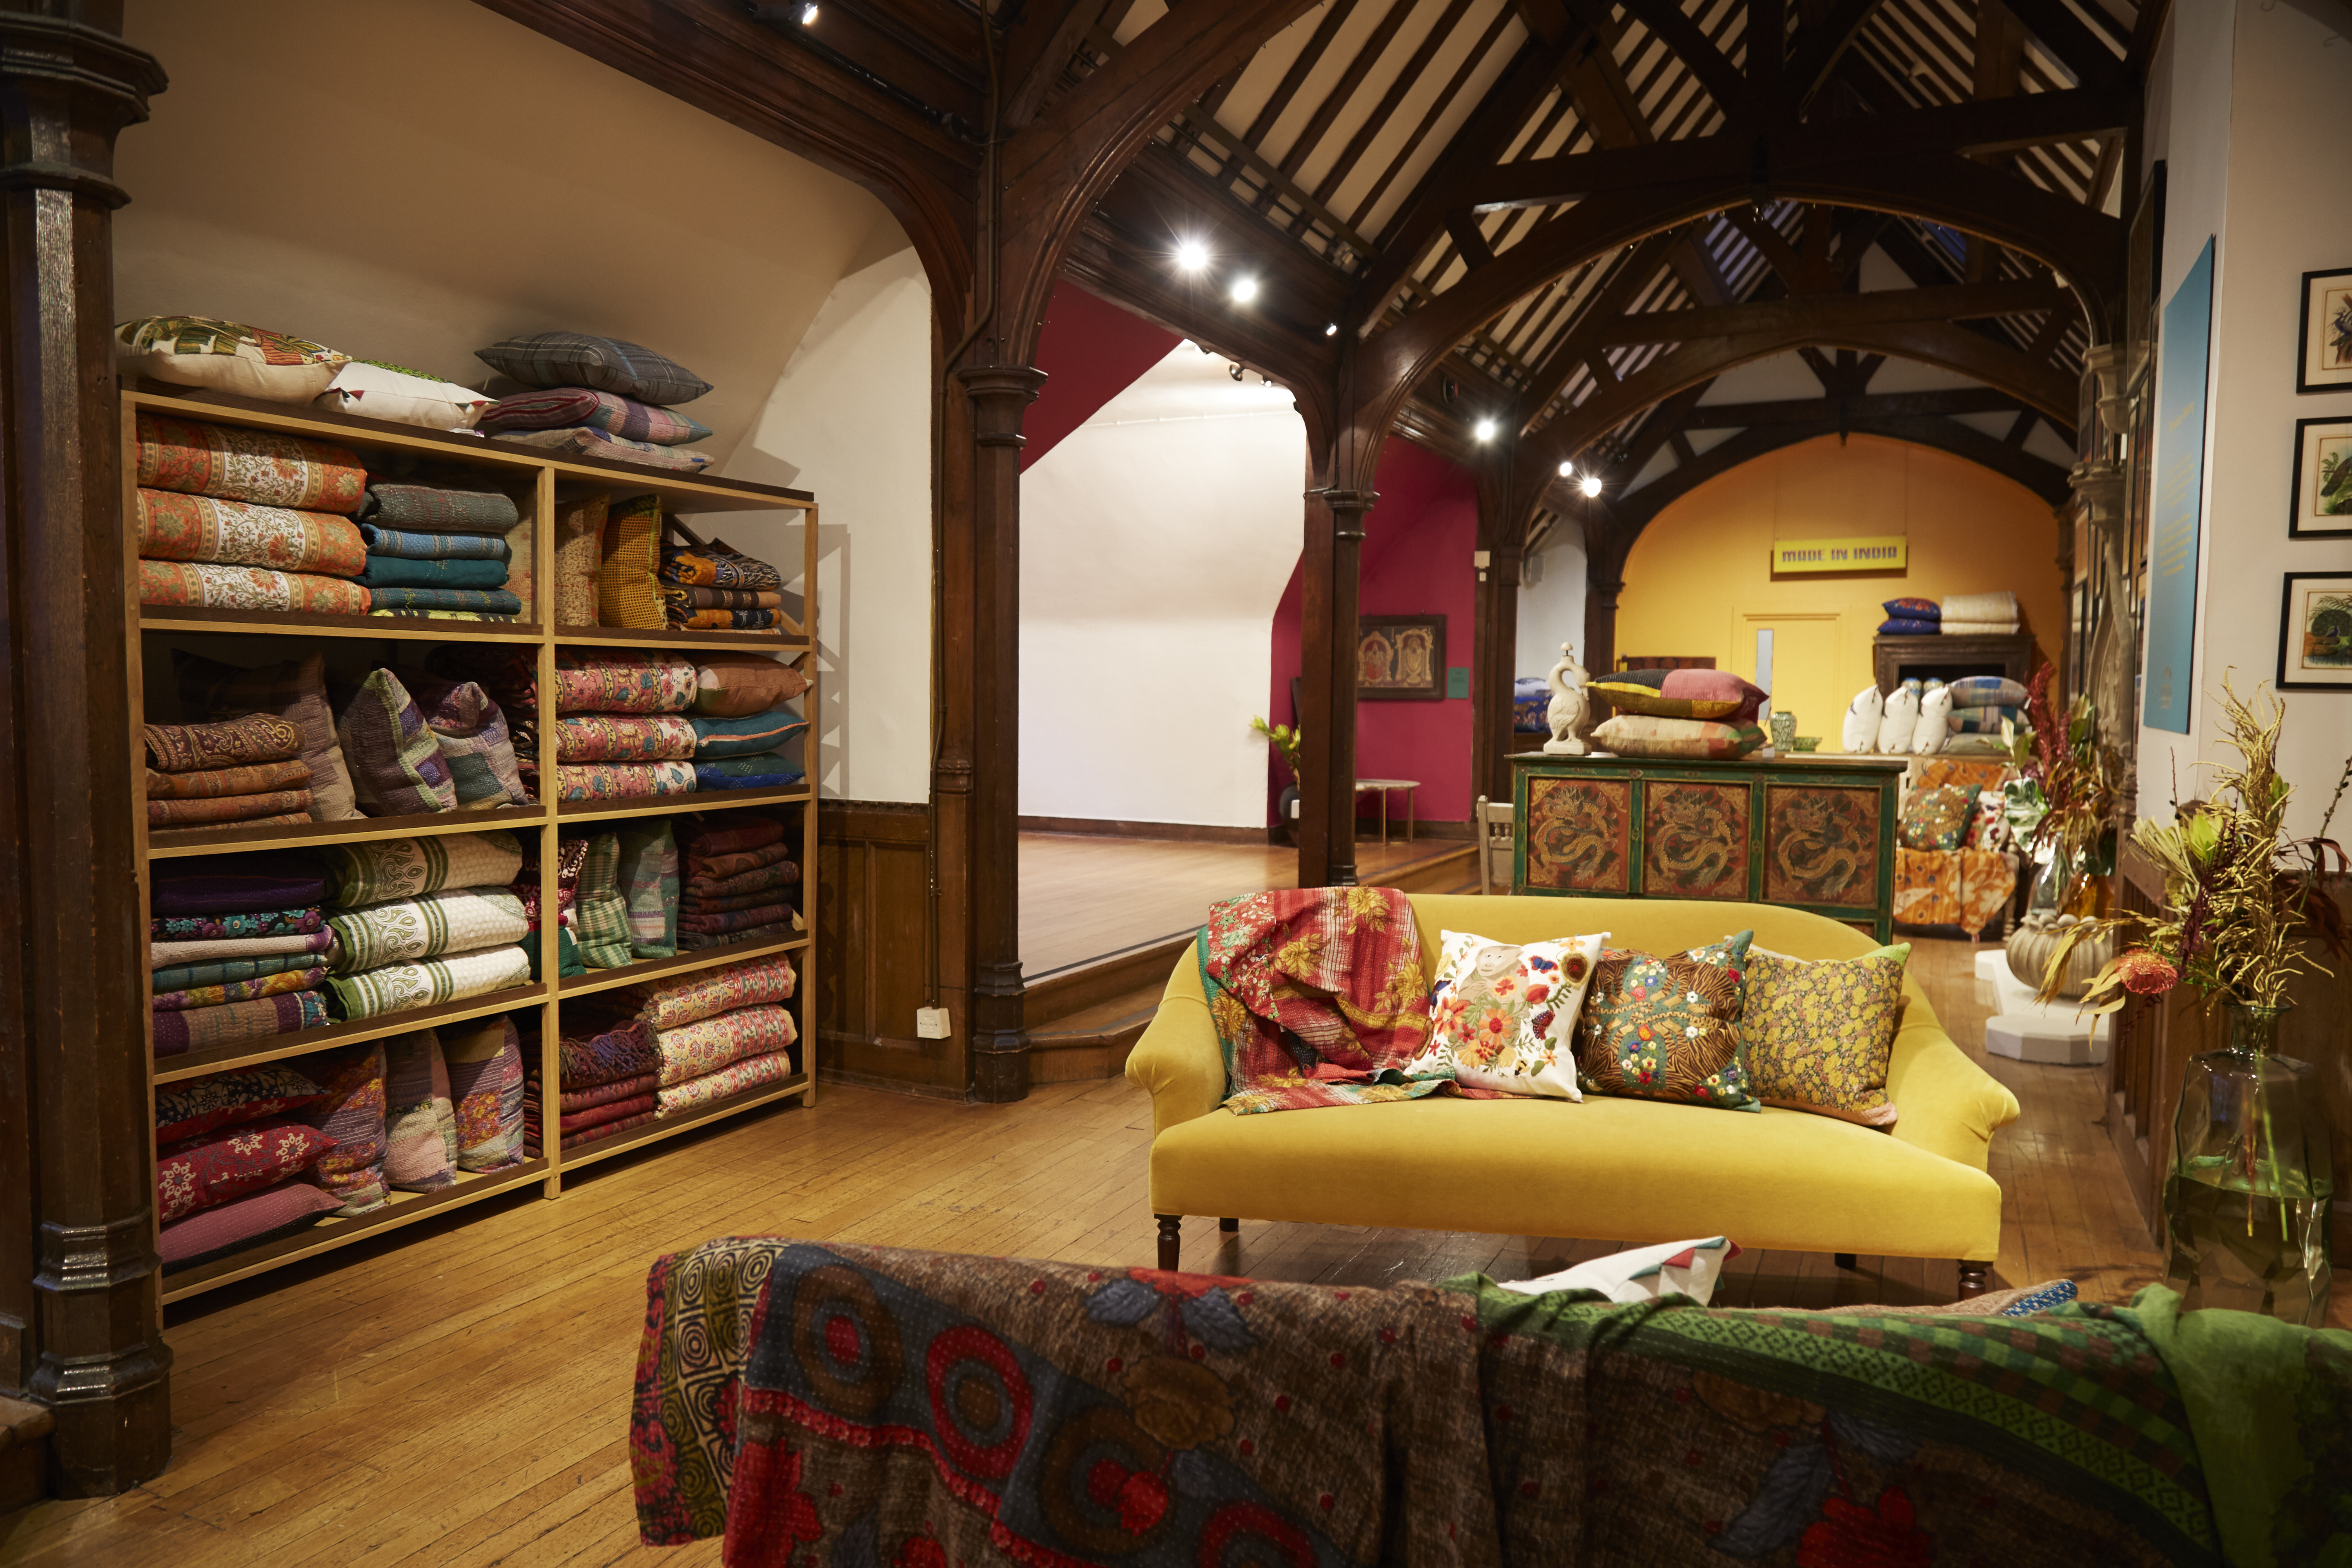 A view of Liberty's furniture floor during the Made in India store takeover.